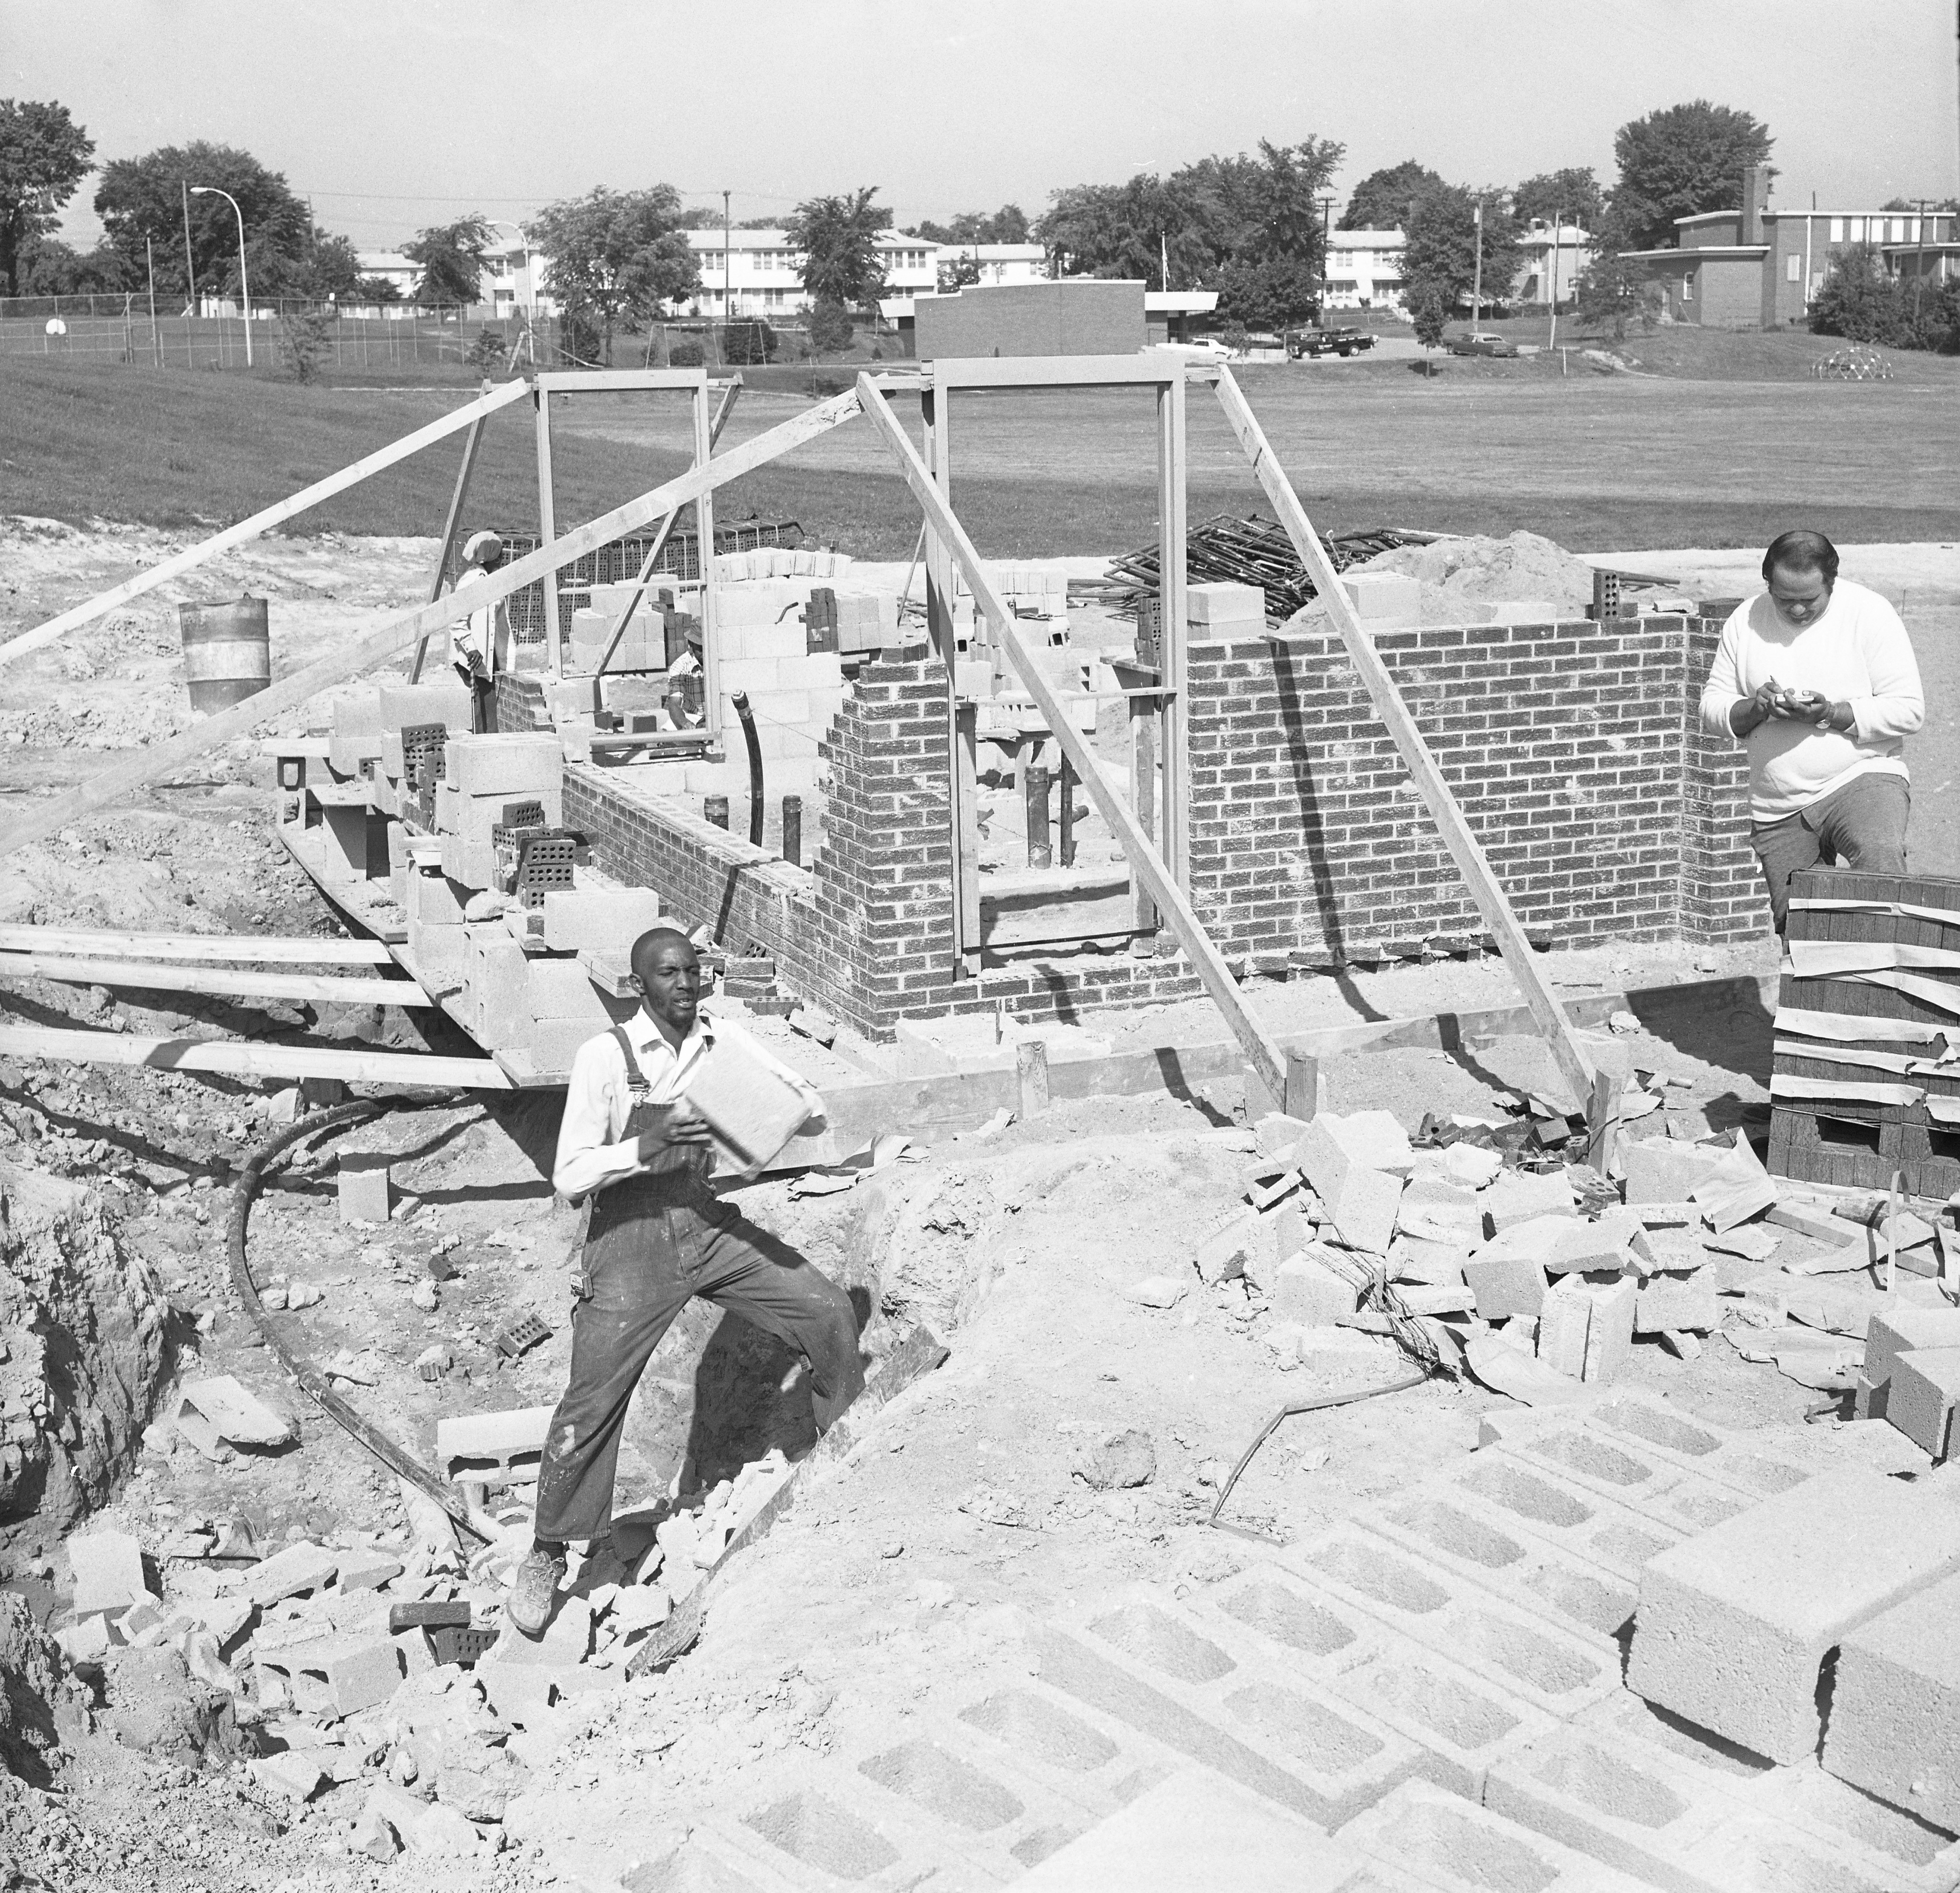 Man Picks Up Cement Blocks At Vandalized Parkridge Project, June 10, 1975 image